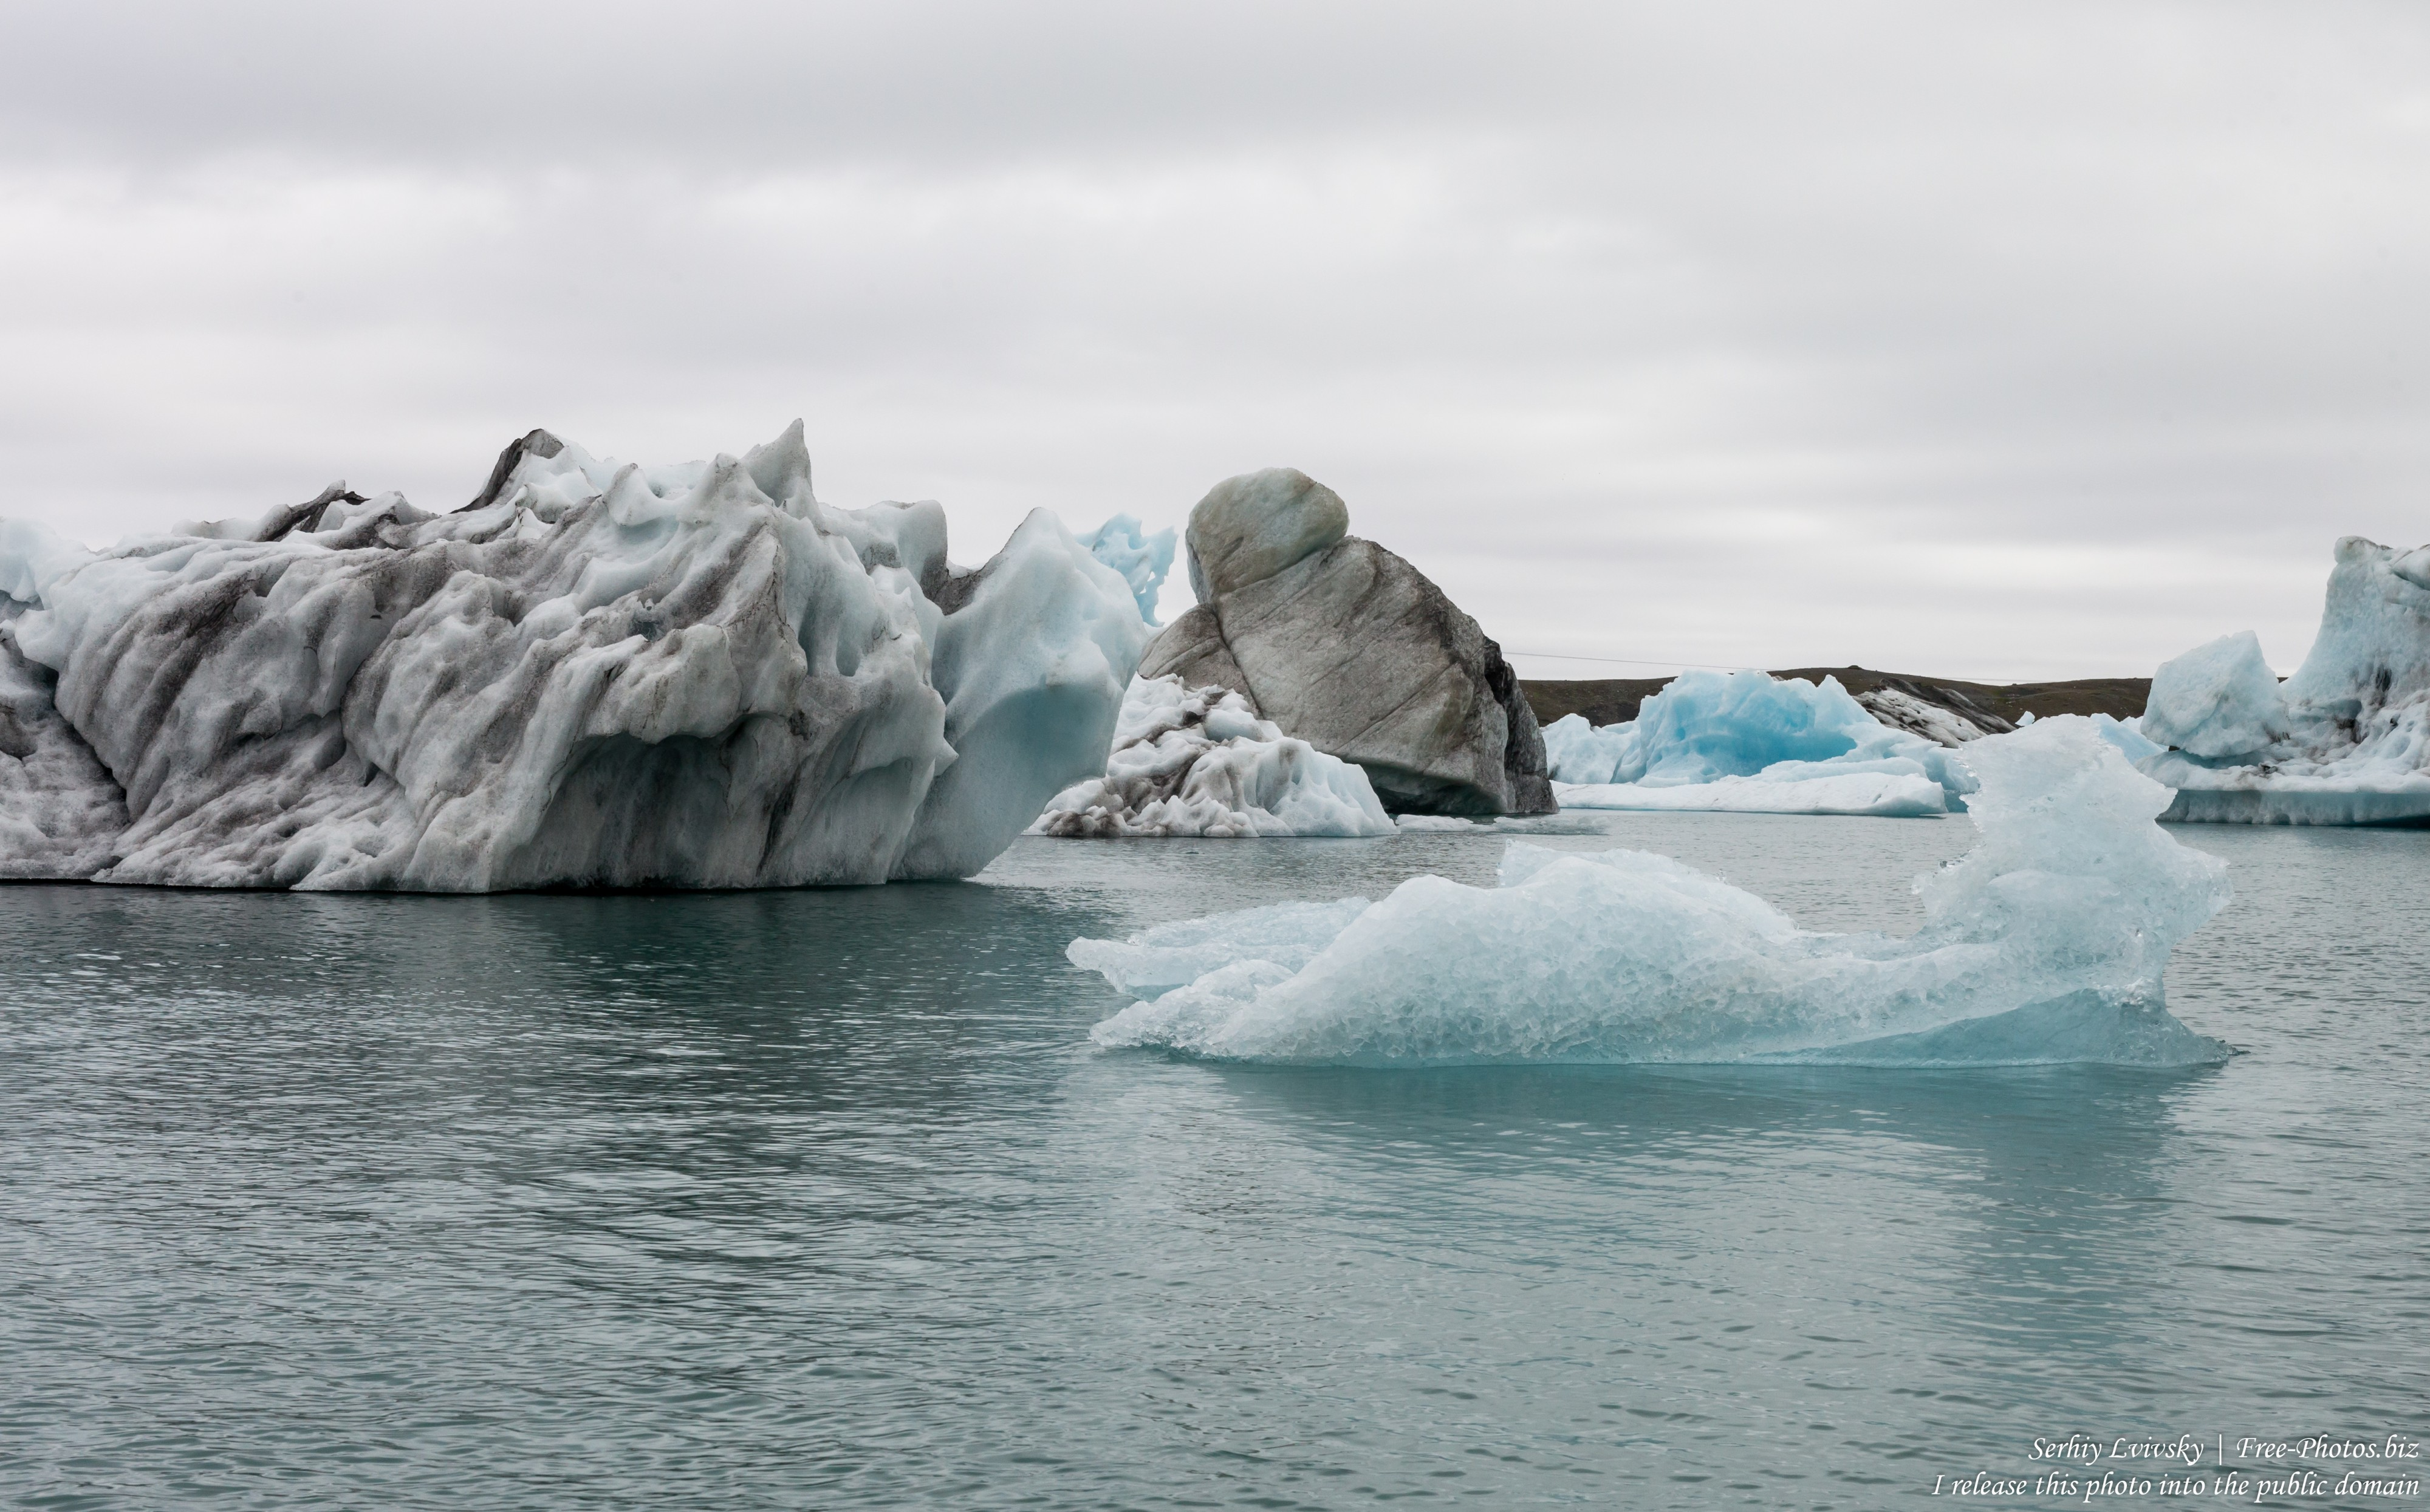 Jokulsarlon Glacier Lagoon, Iceland, photographed in May 2019 by Serhiy Lvivsky, photo 23